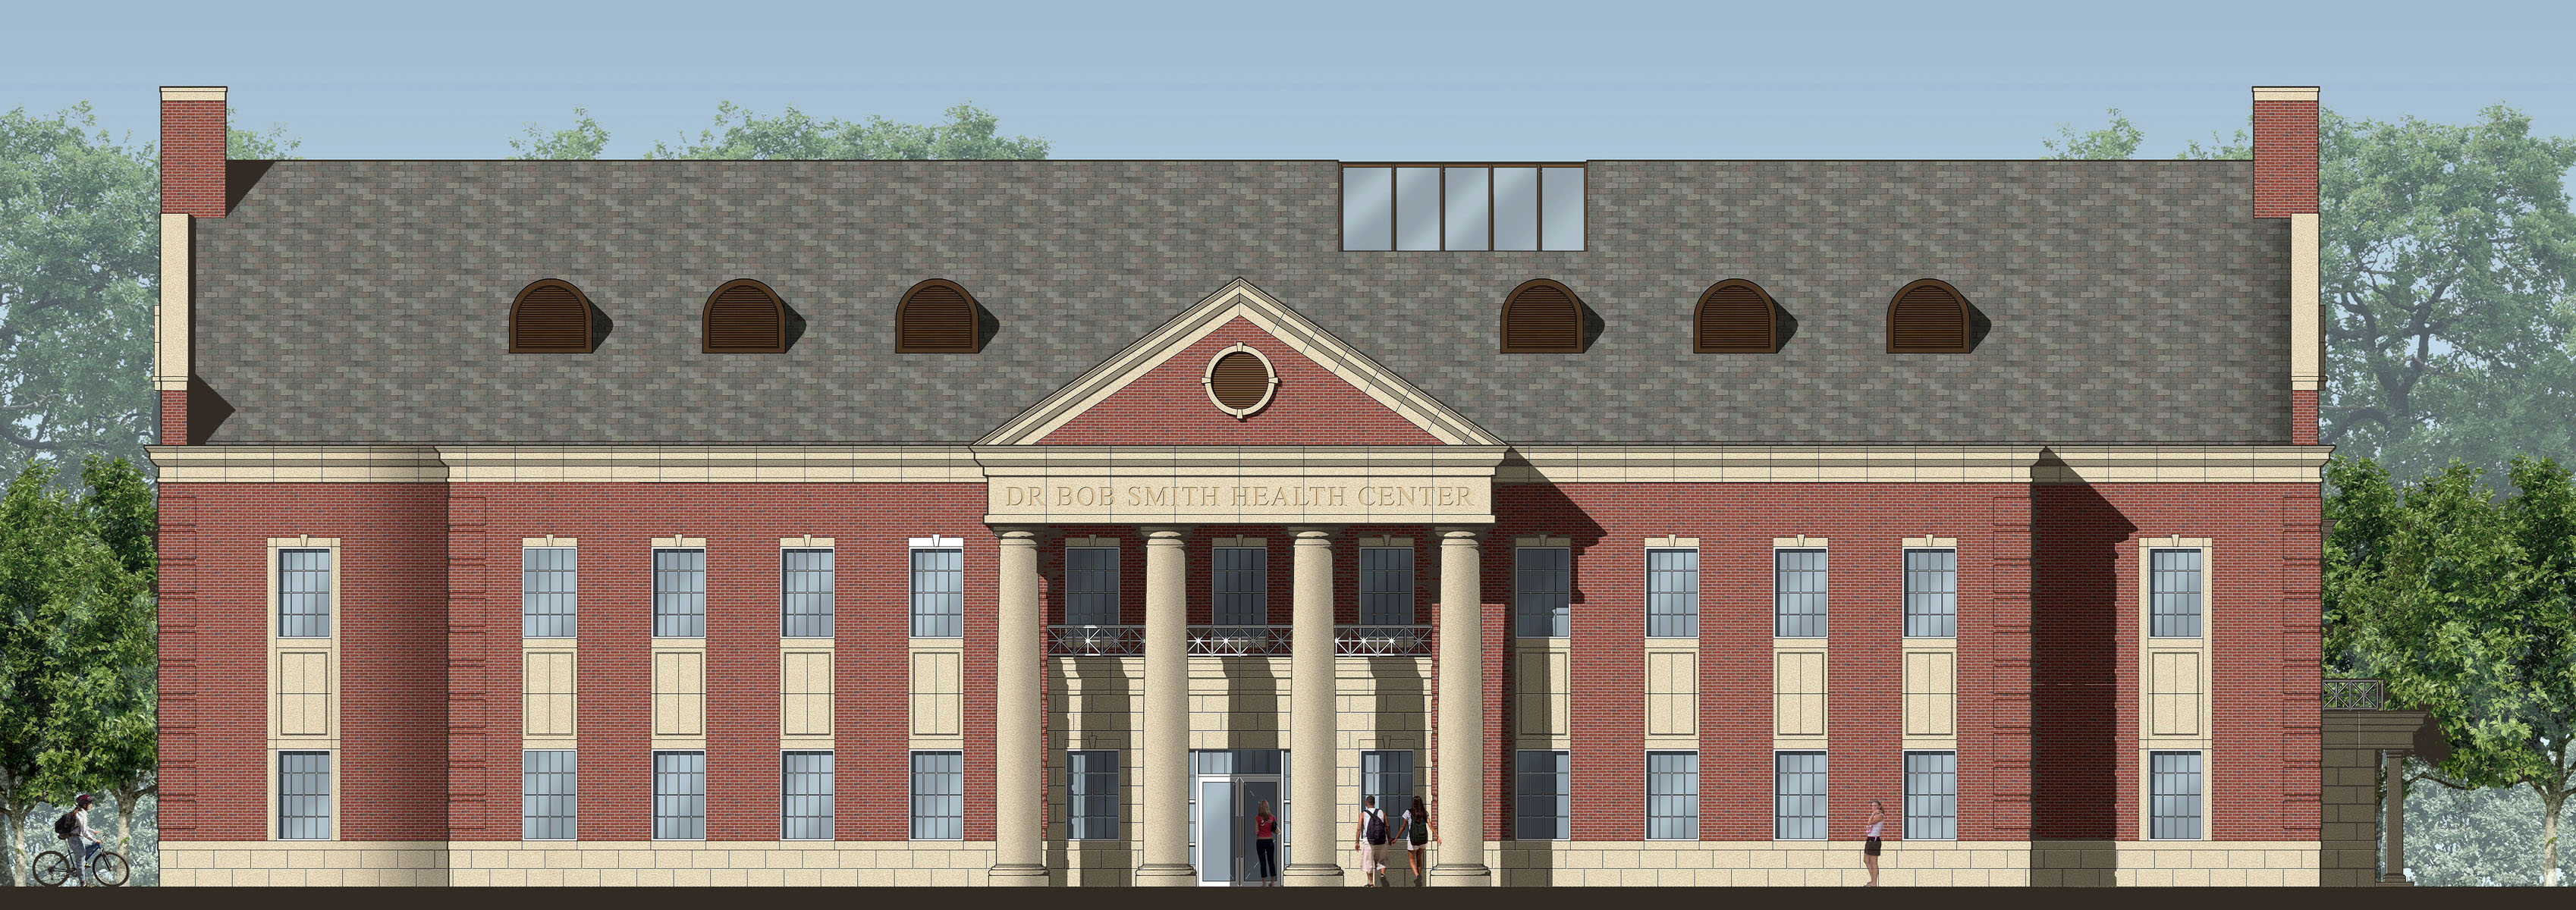 Rendering of the Dr. Bob Smith Health Center at SMU